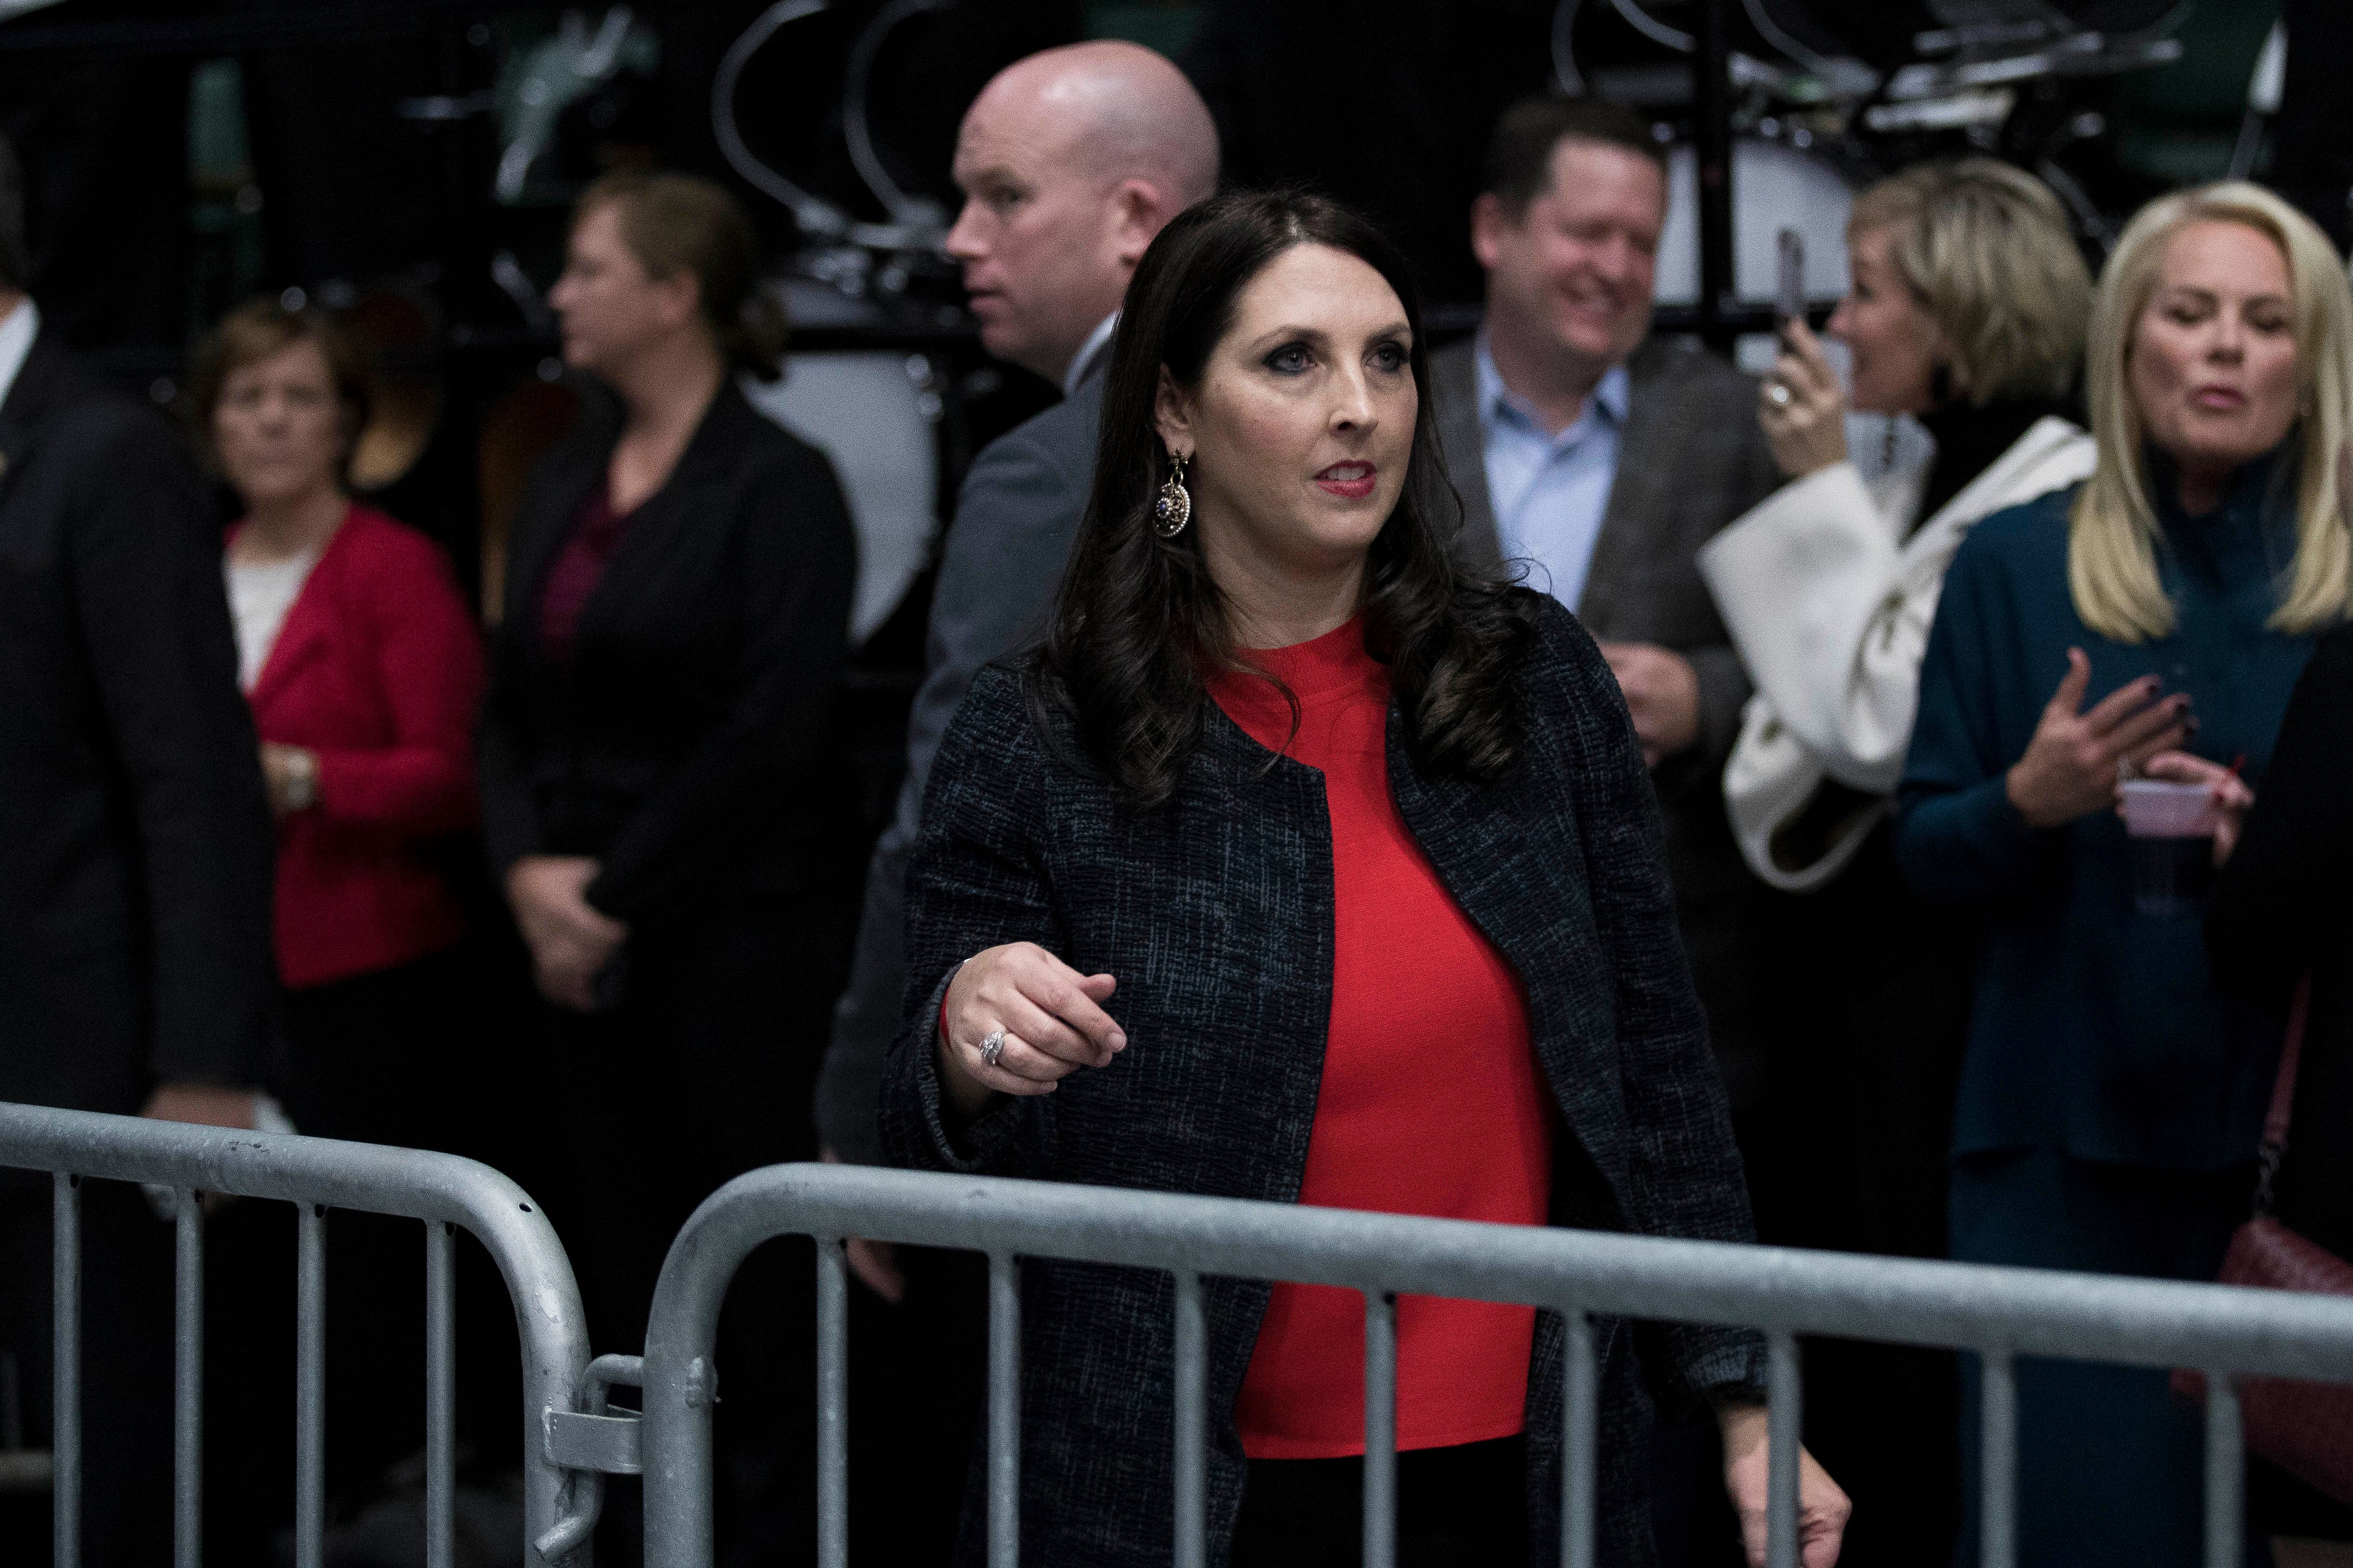 vGRAND RAPIDS, MI - DECEMBER 9: Michigan Republican Party Chair Ronna Romney McDaniel exits the stage after speaking ahead of President-elect Donald Trump at the DeltaPlex Arena, December 9, 2016 in Grand Rapids, Michigan. President-elect Donald Trump is continuing his victory tour across the country. (Photo by Drew Angerer/Getty Images)